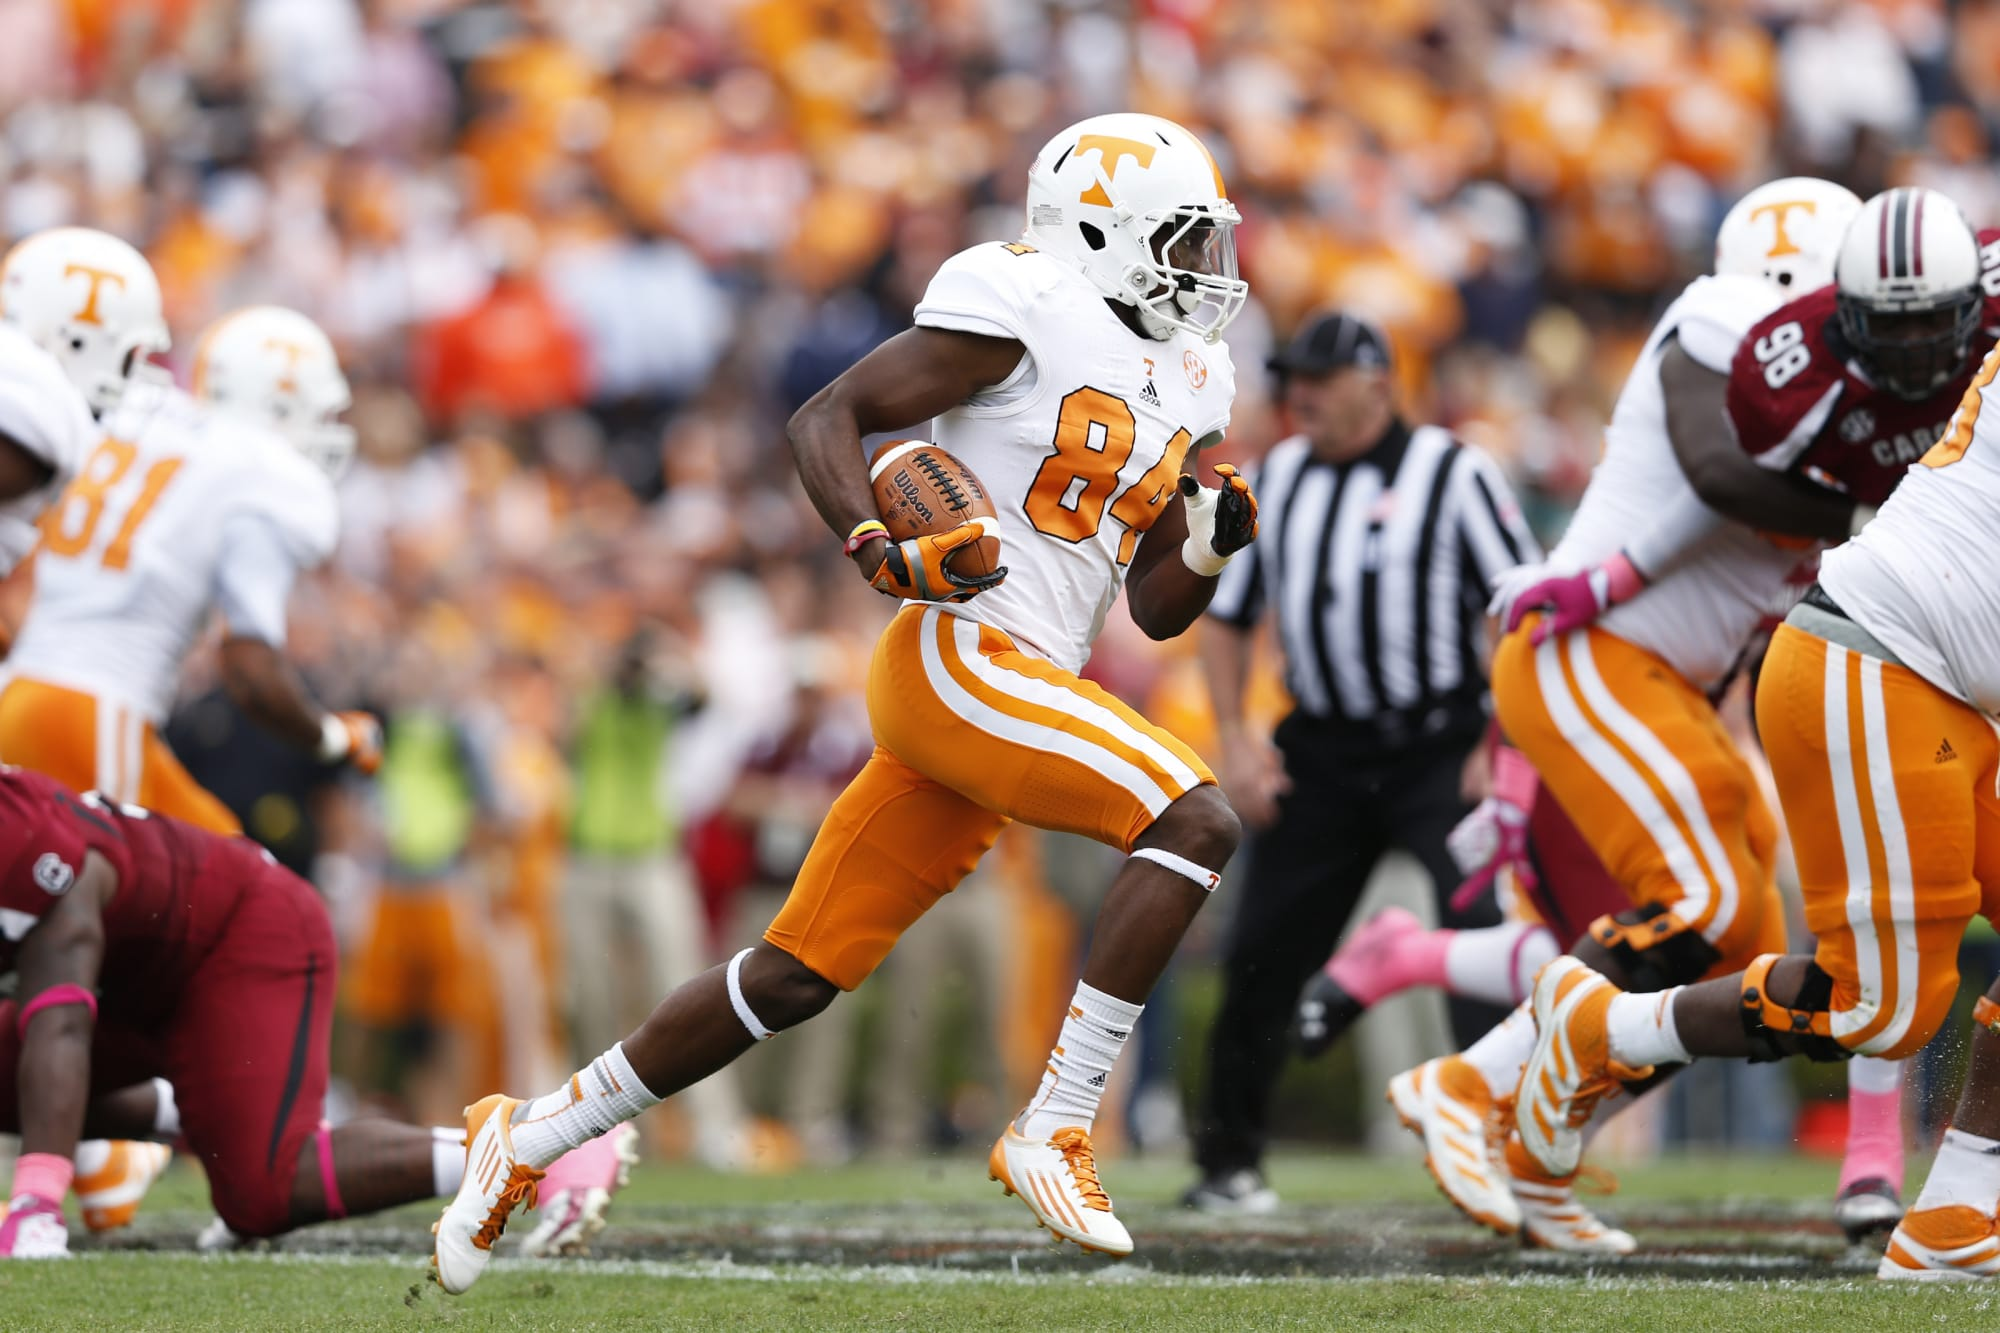 Tennessee football: Former Vols WR Cordarrelle Patterson ties NFL ...